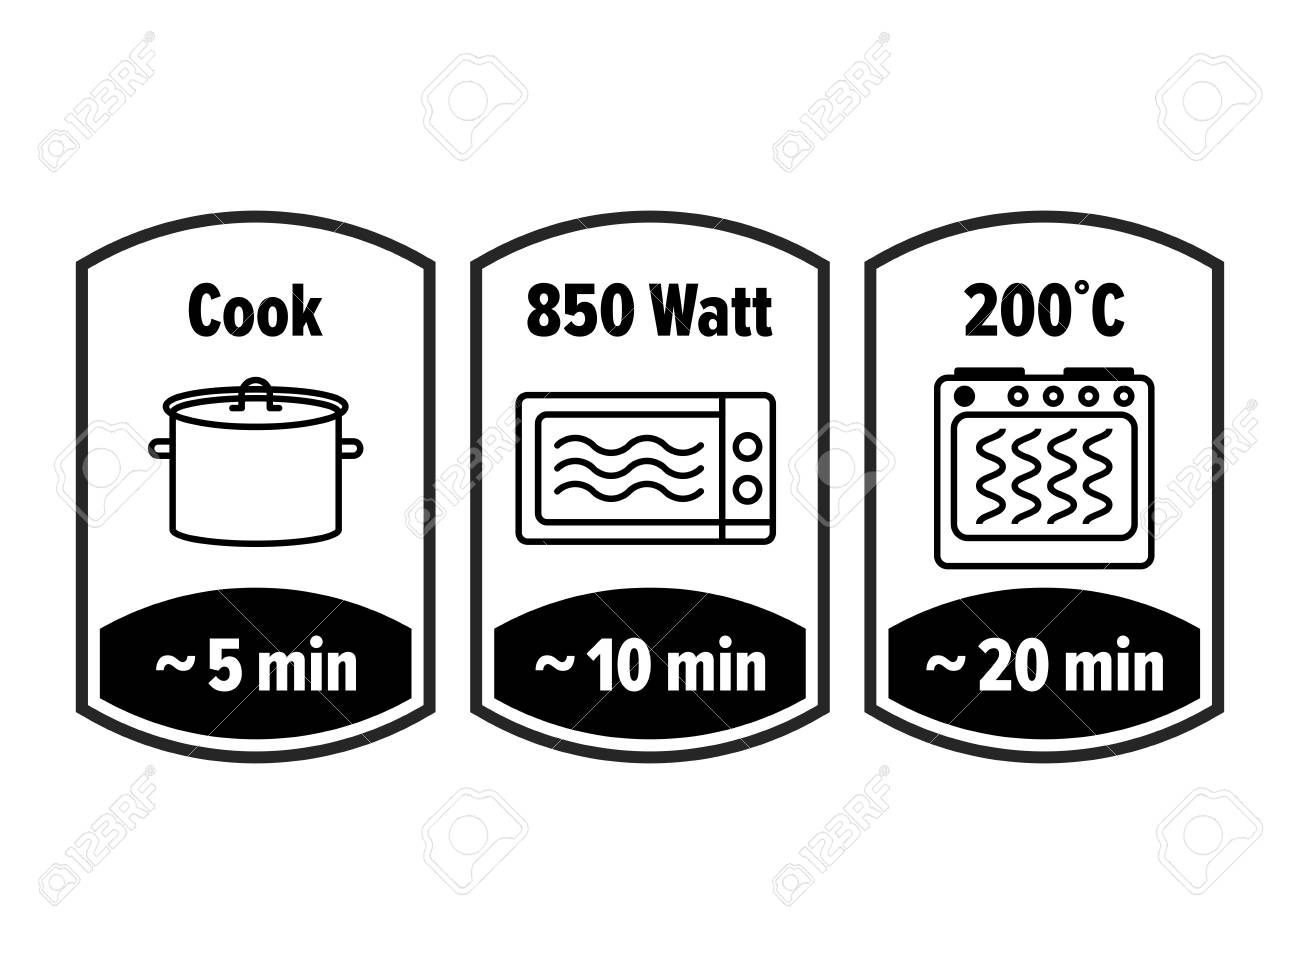 Cook minutes vector icon. 5, 10 and 20 minutes cooking in boiling saucepan, microwave watt and oven cooker temperature, food cook package instruction symbols - 124593128